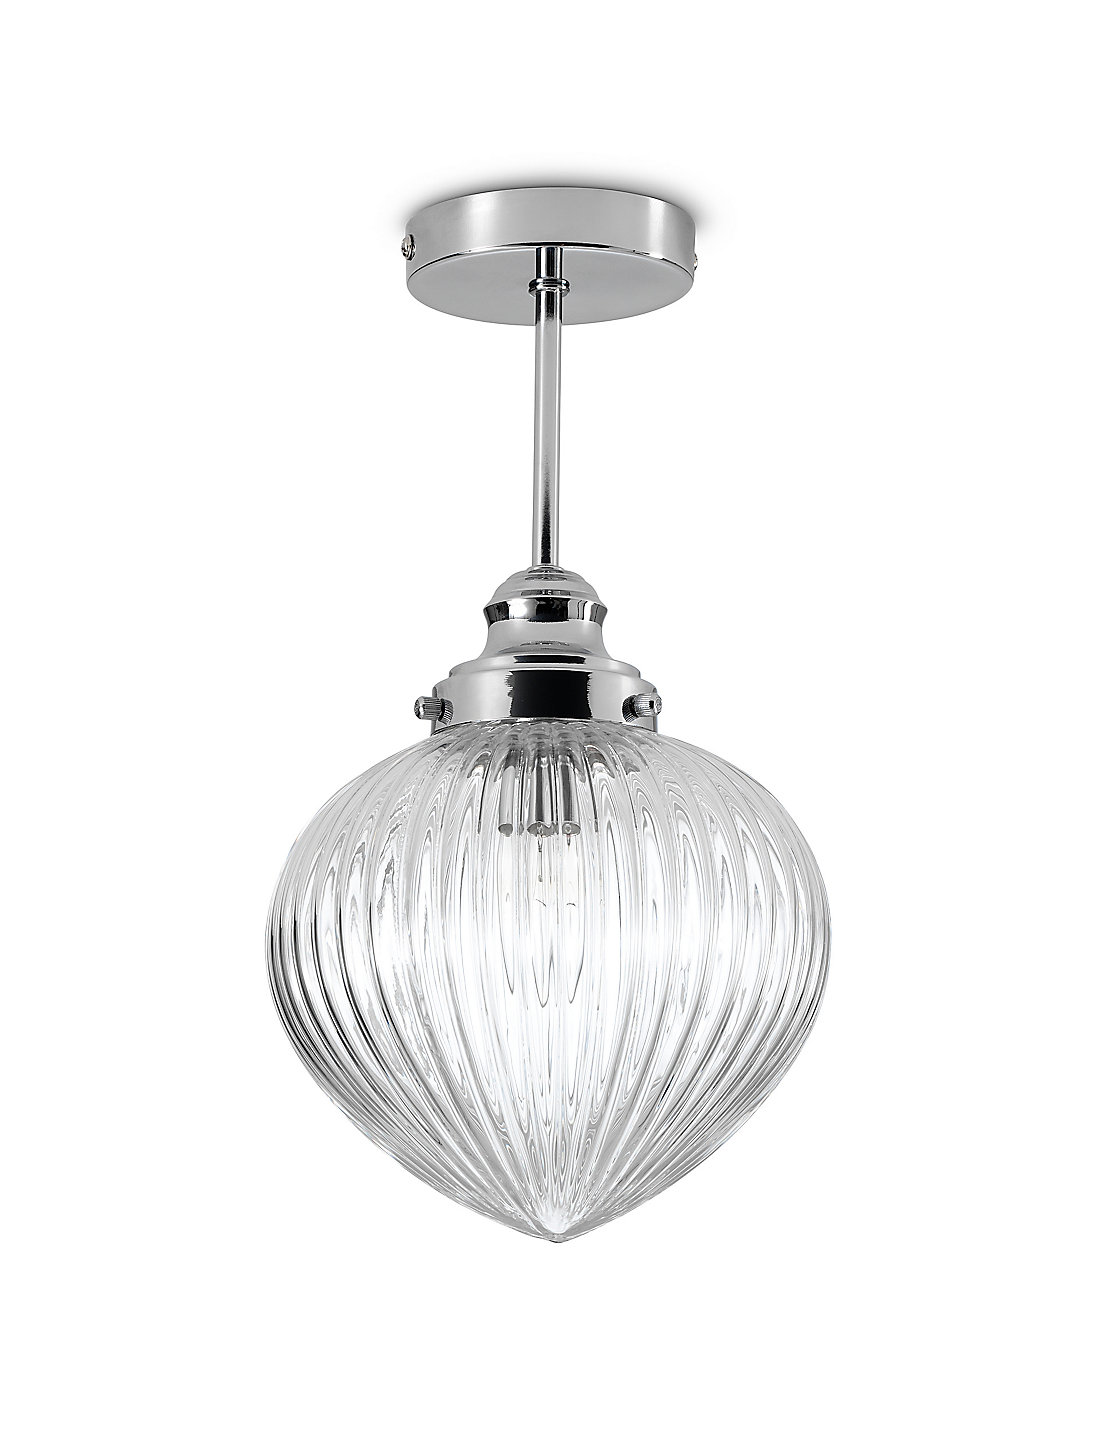 Ceiling lights at marks and spencers : Marks and spencer ceiling lamp integralbook